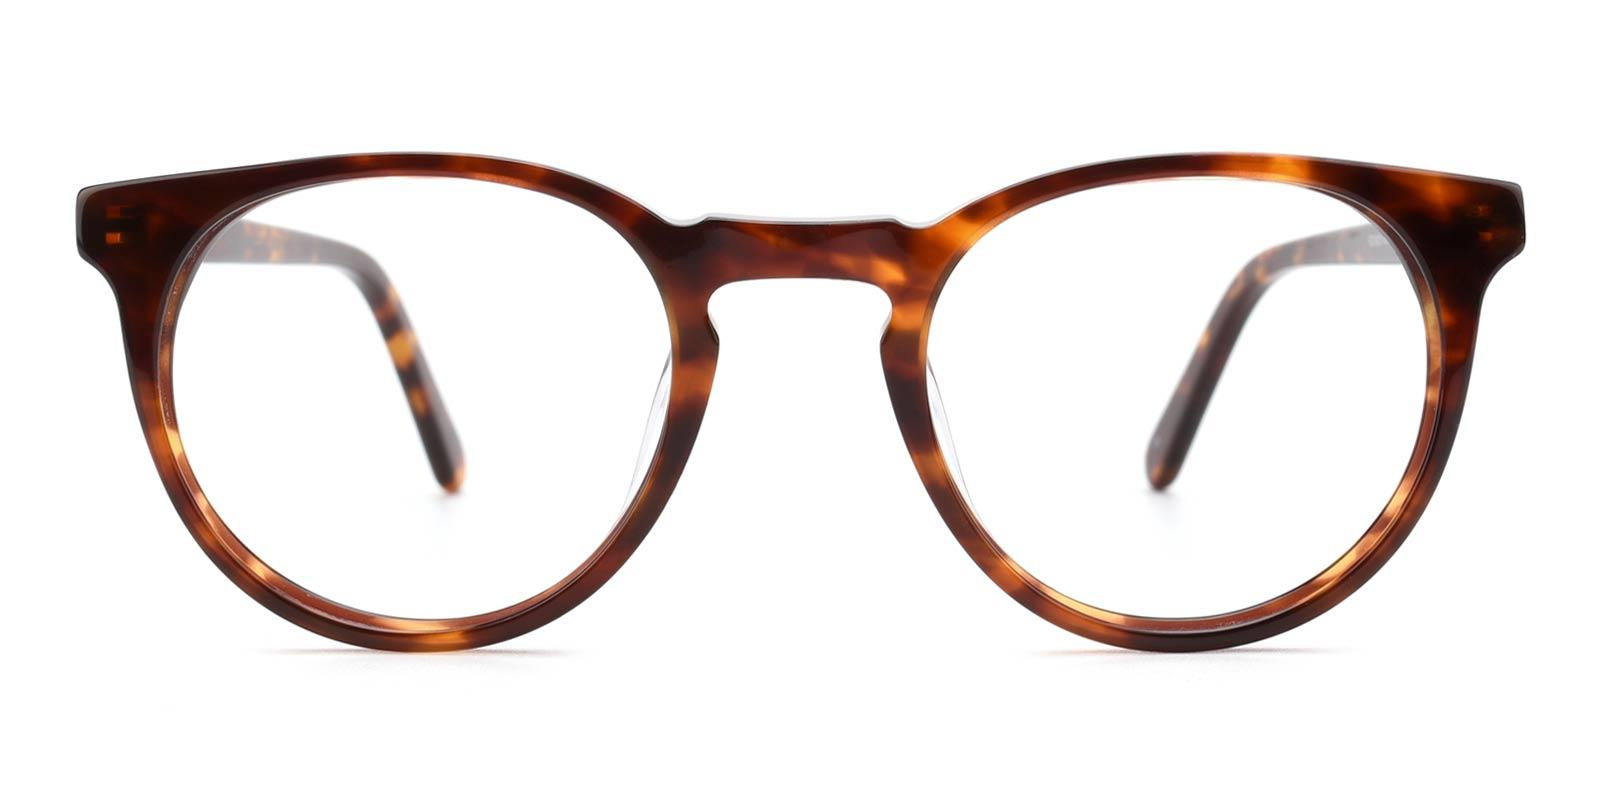 March-Tortoise-Round-Acetate-Eyeglasses-additional2